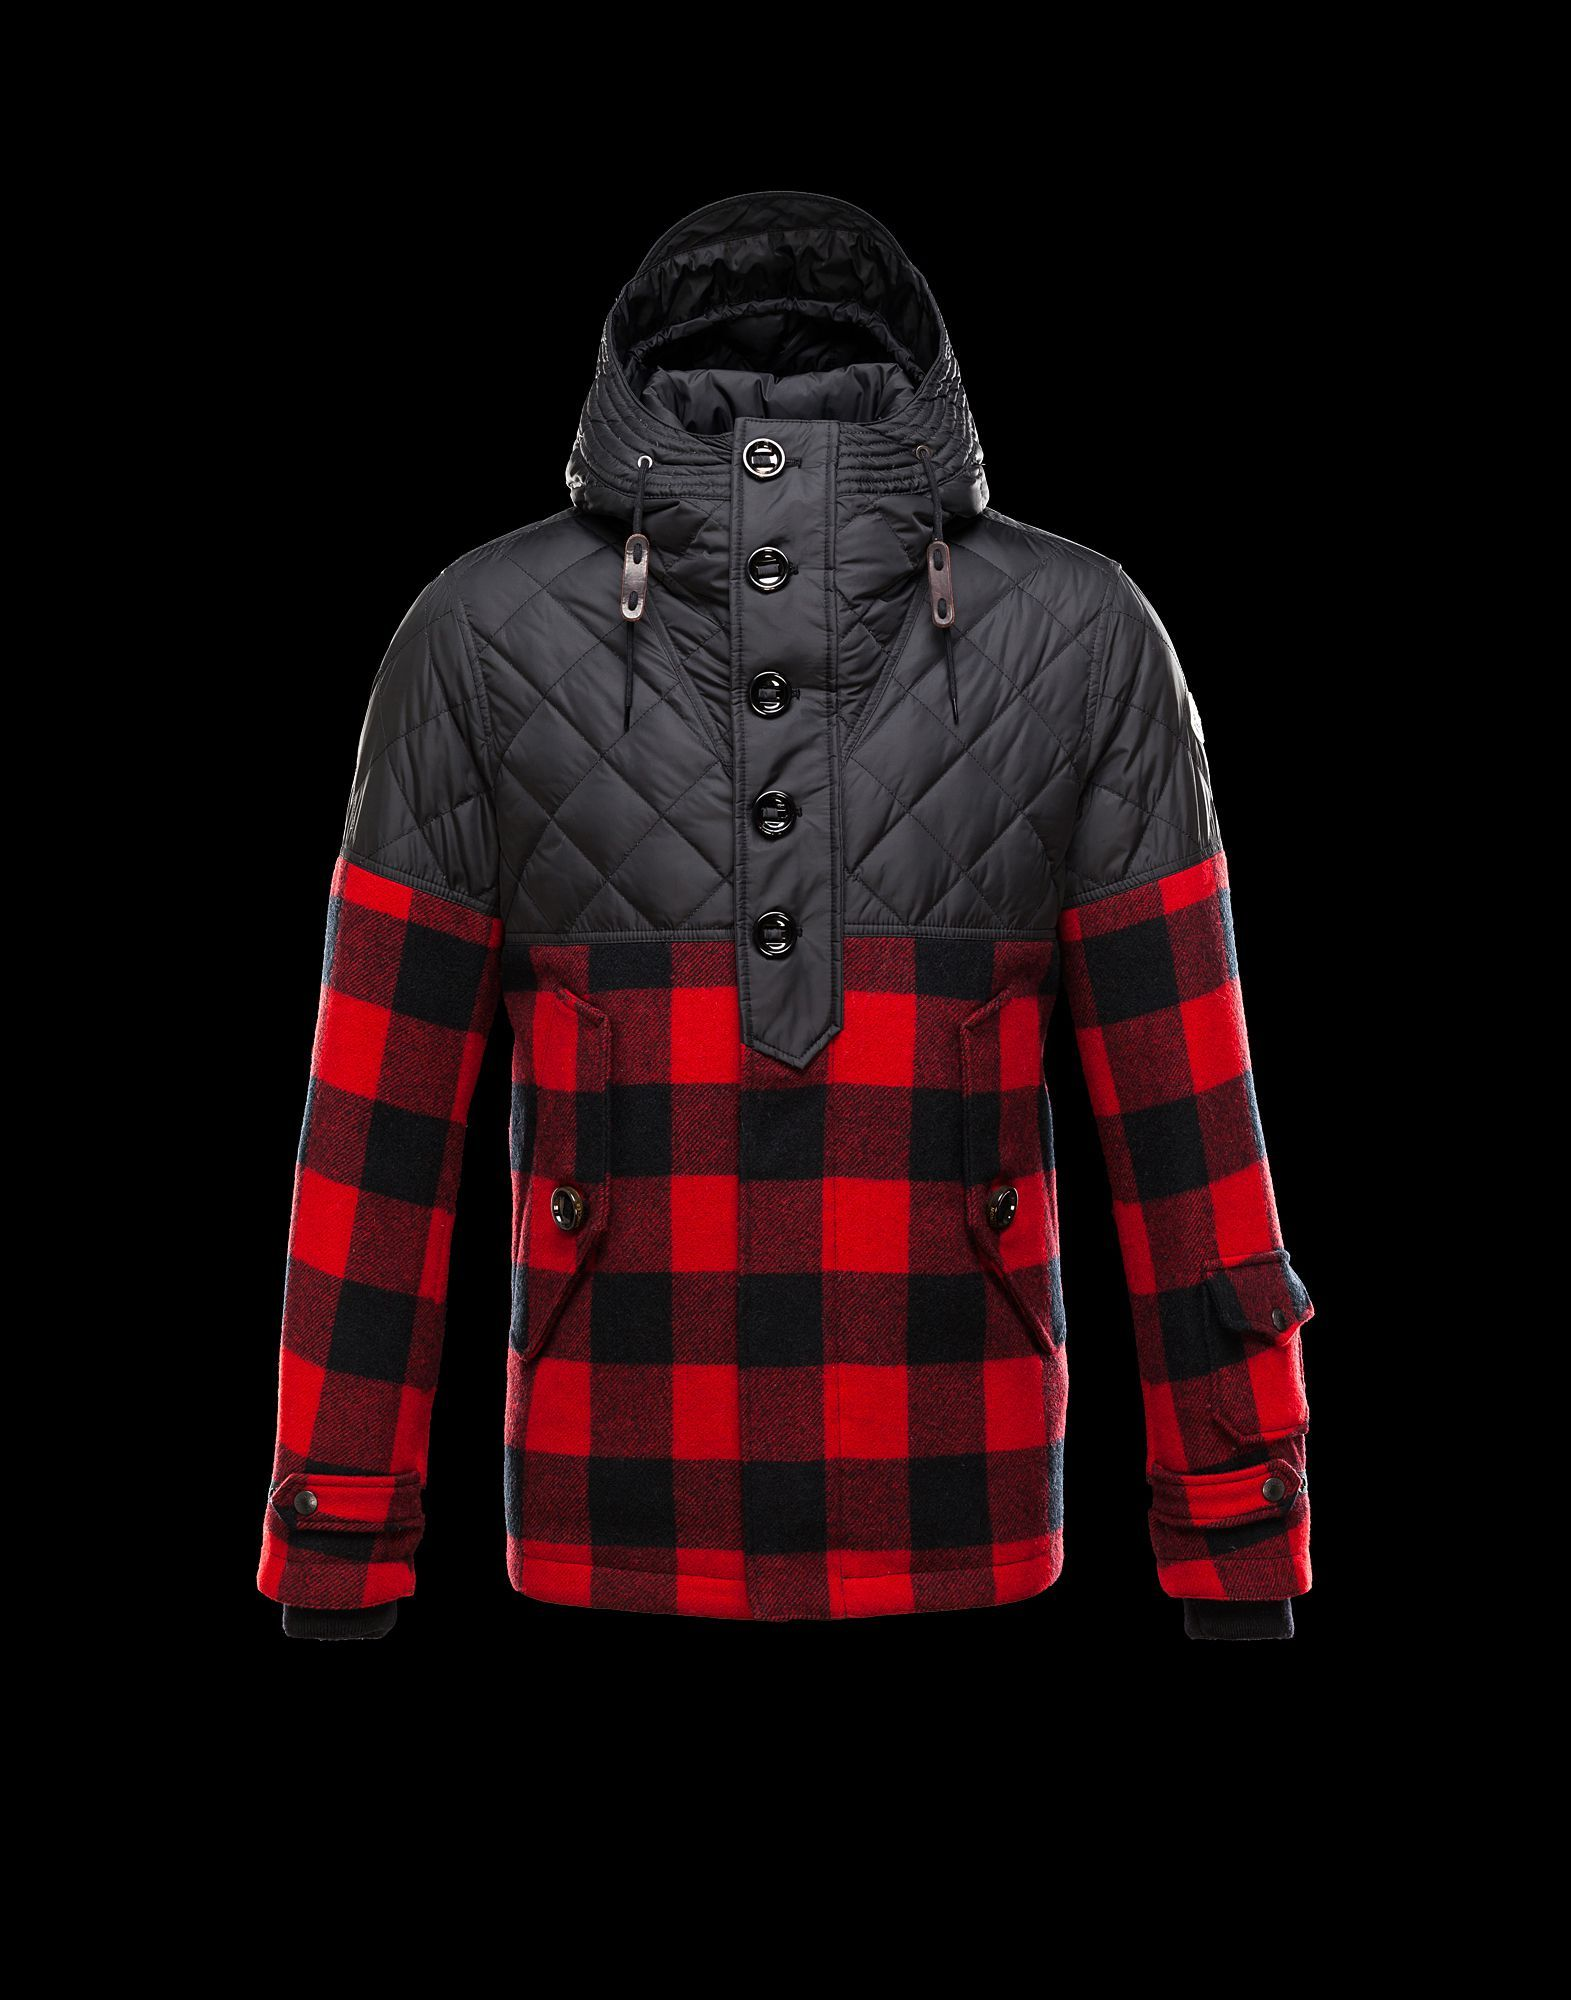 9ab414af2dda This jacket is the bomb. Too bad I have such expensive taste. Maybe ...